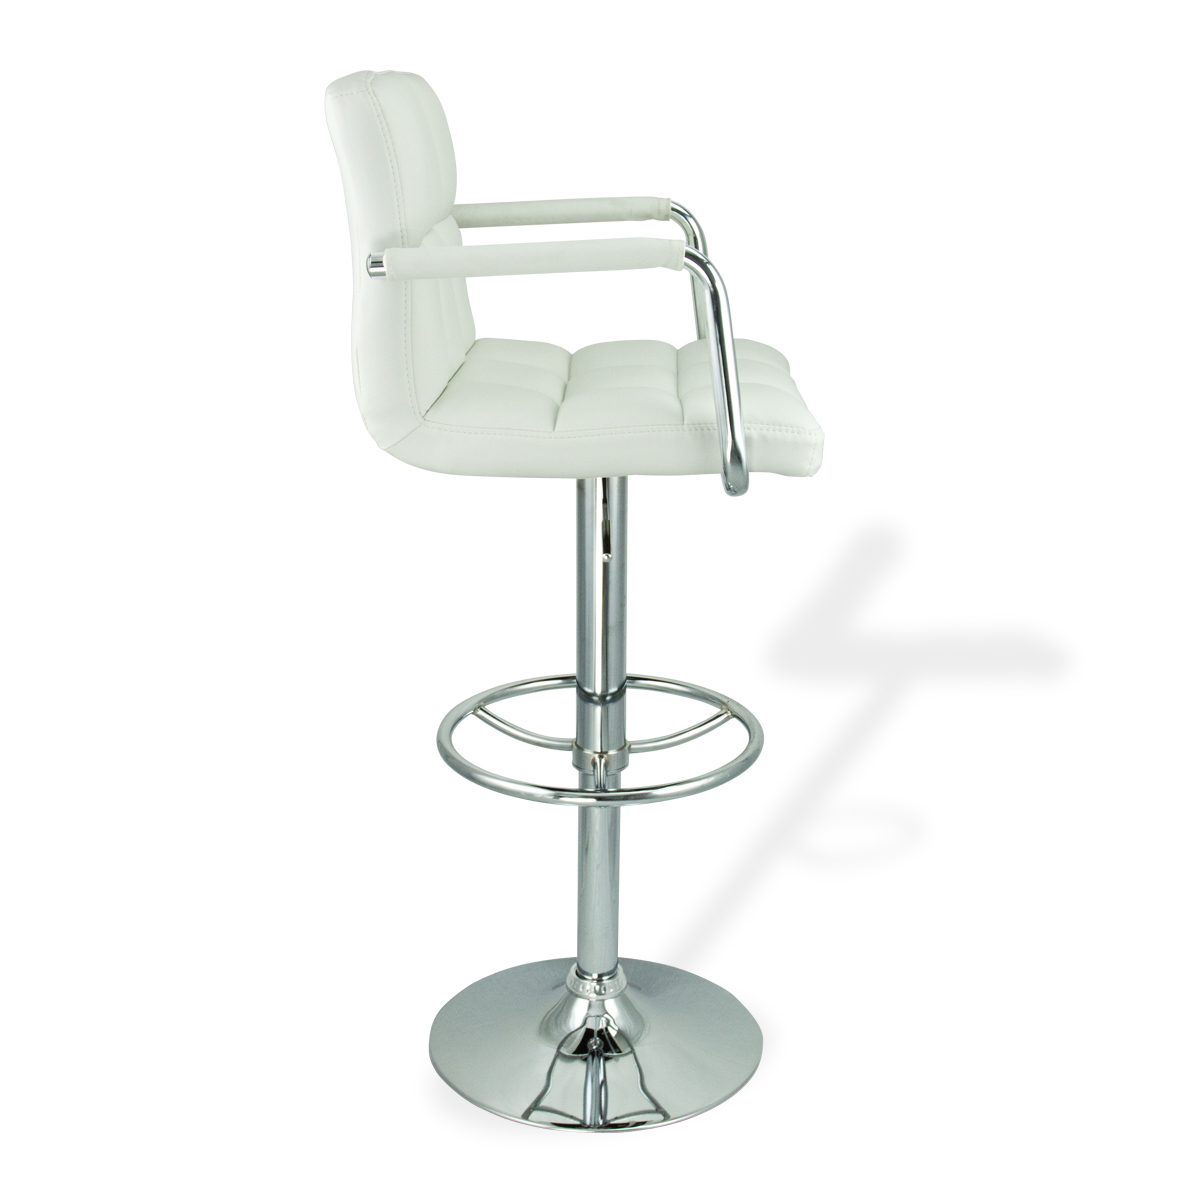 2 White W Arm Swivel Bar Stool Pu Leather Modern